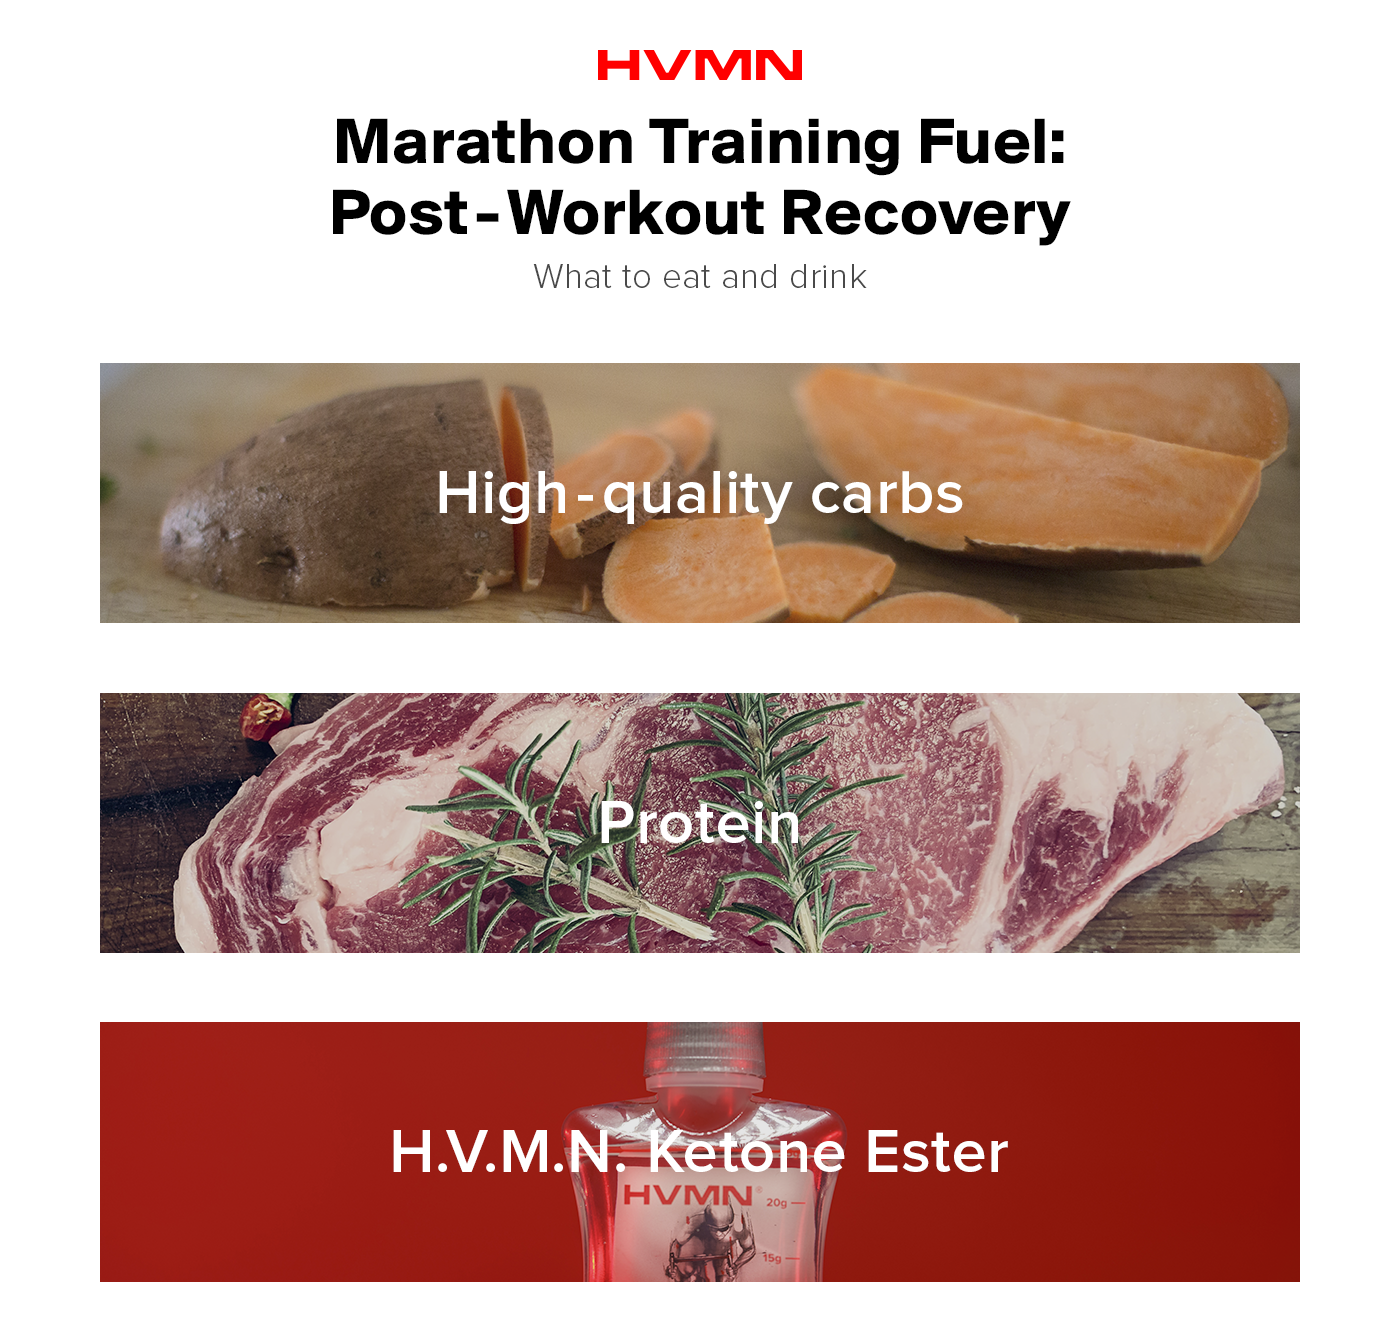 Post-workout nutrition strategies to recover right.